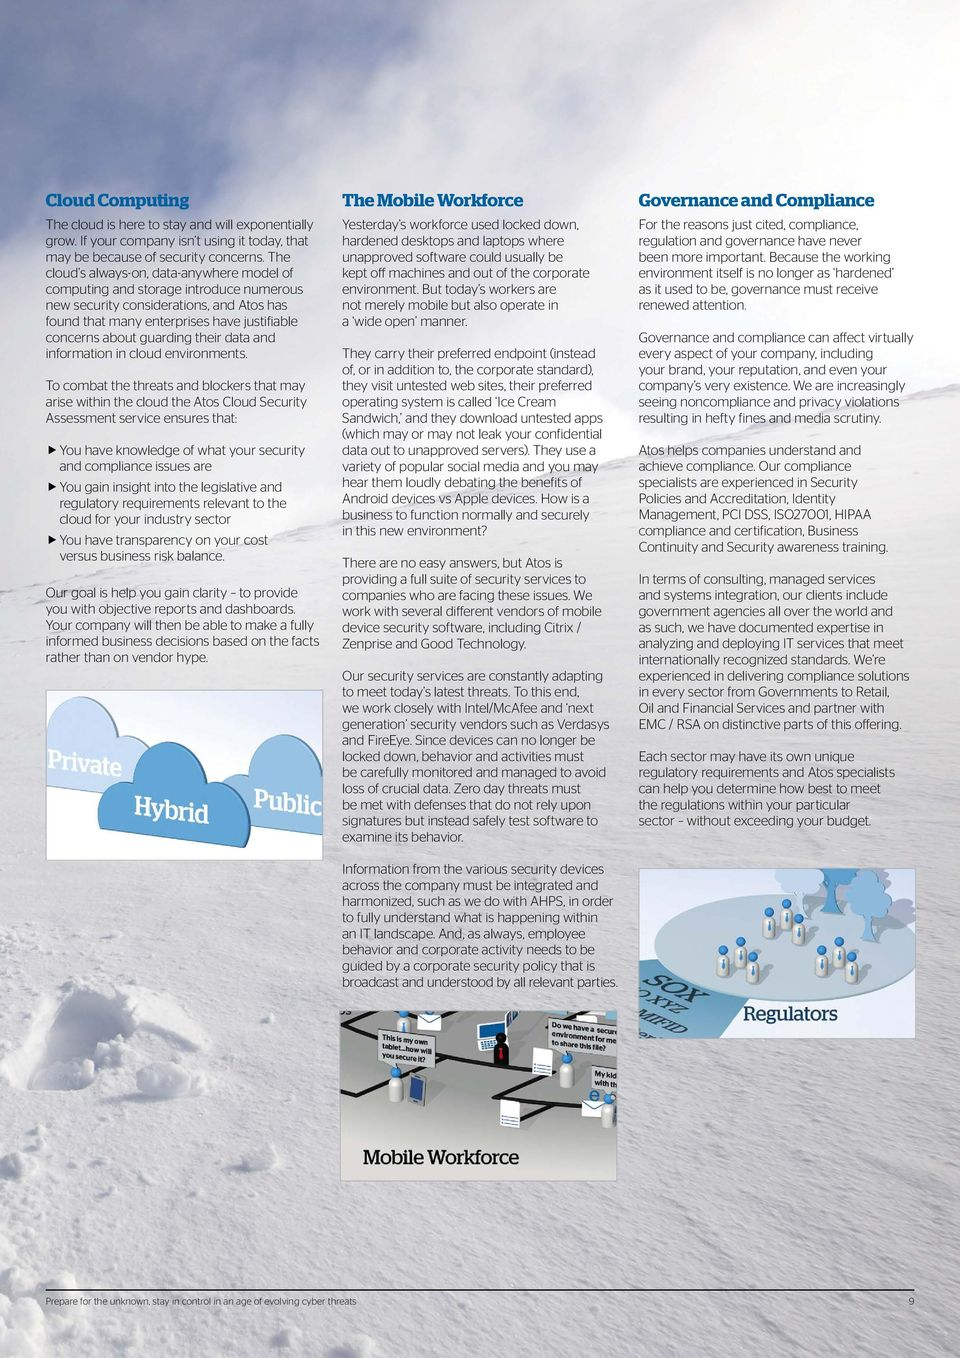 their data and information in cloud environments.